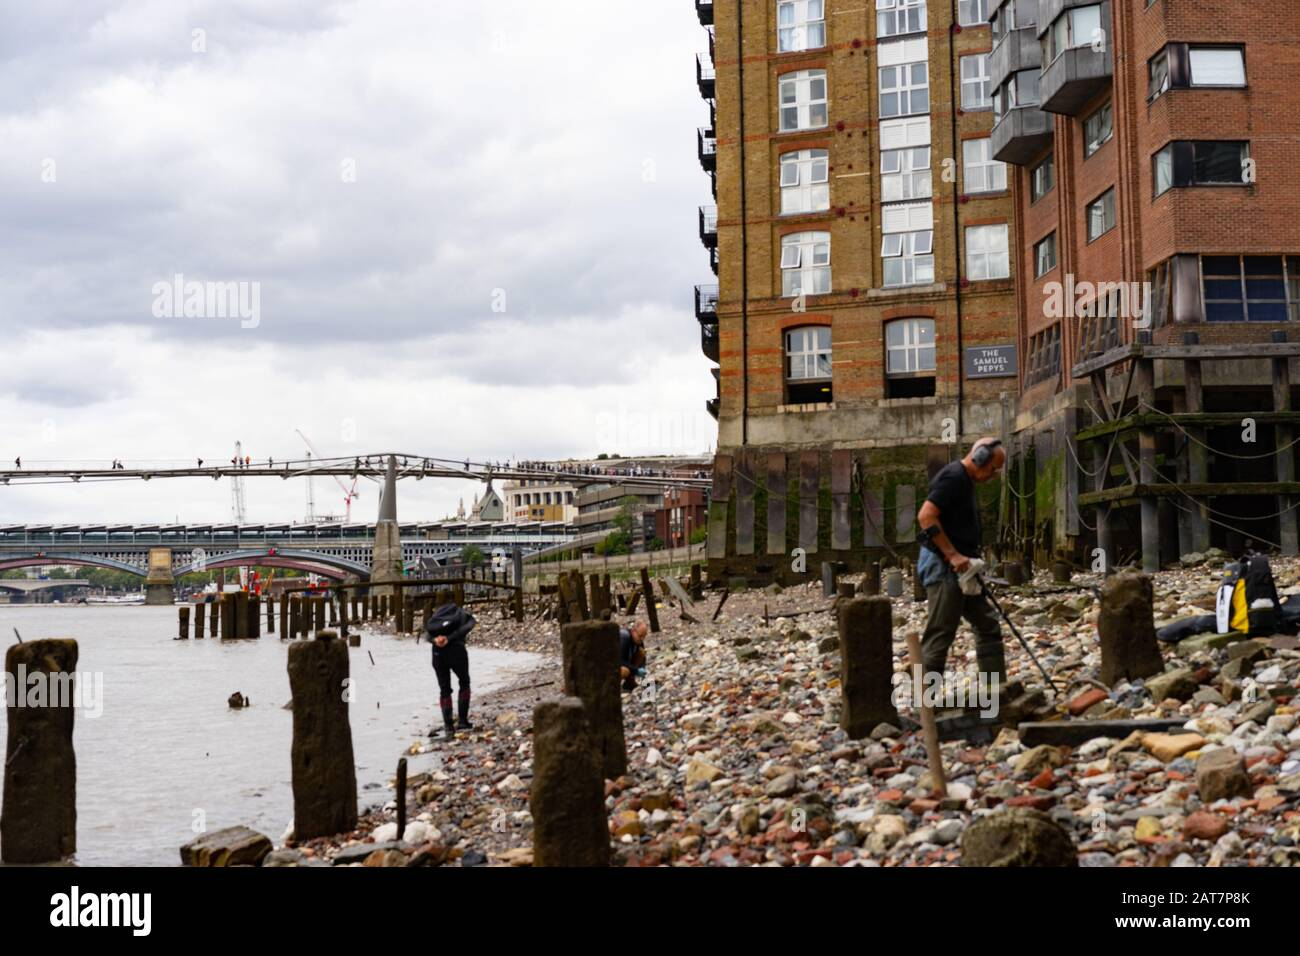 A man with metal detector works his way along the river Thames foreshore looking towards the shard building. With ancient posts exposed, is a popular place for mudlarking and archaeological finds. Stock Photo